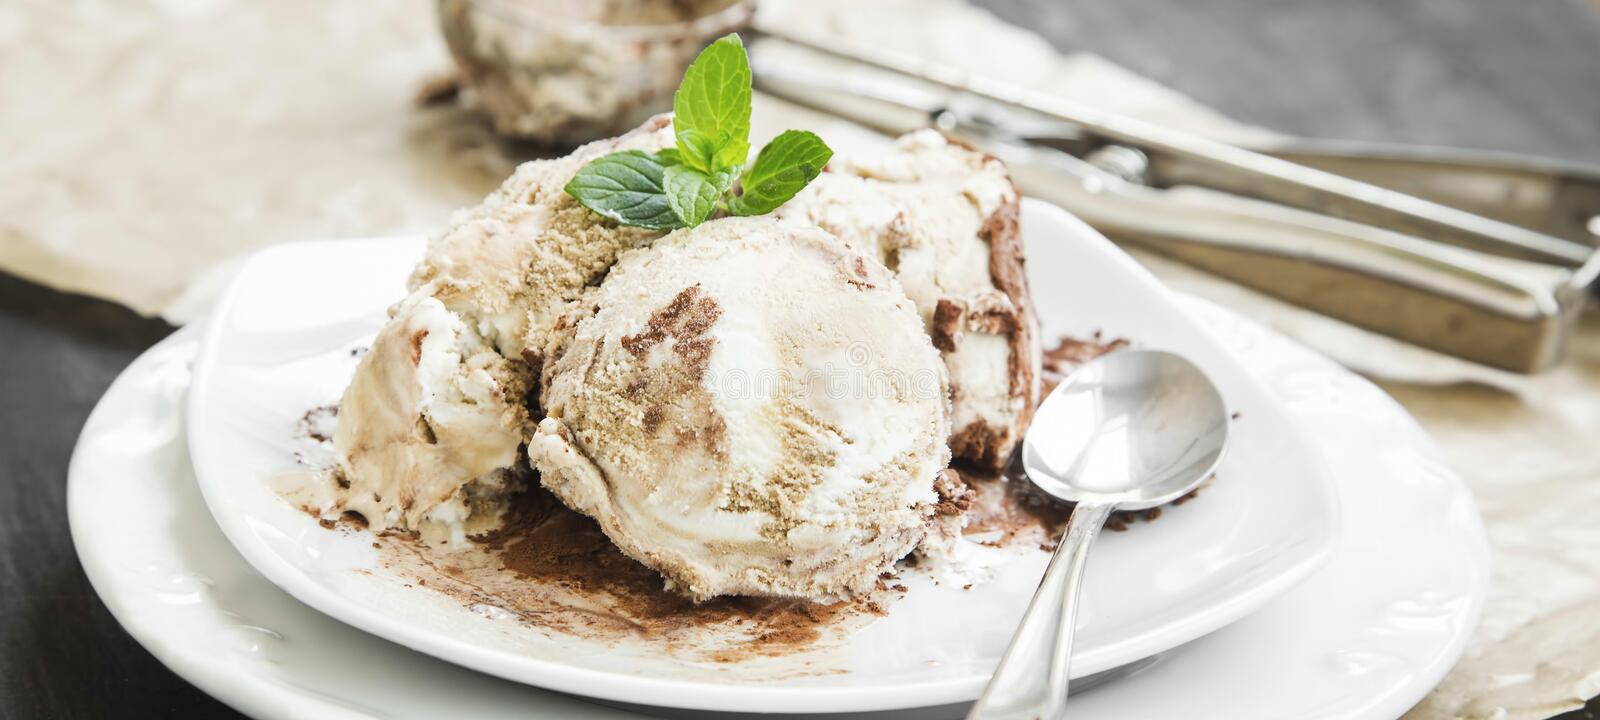 Tiramisu Icecream with Mint in Dessert Plate stock photo